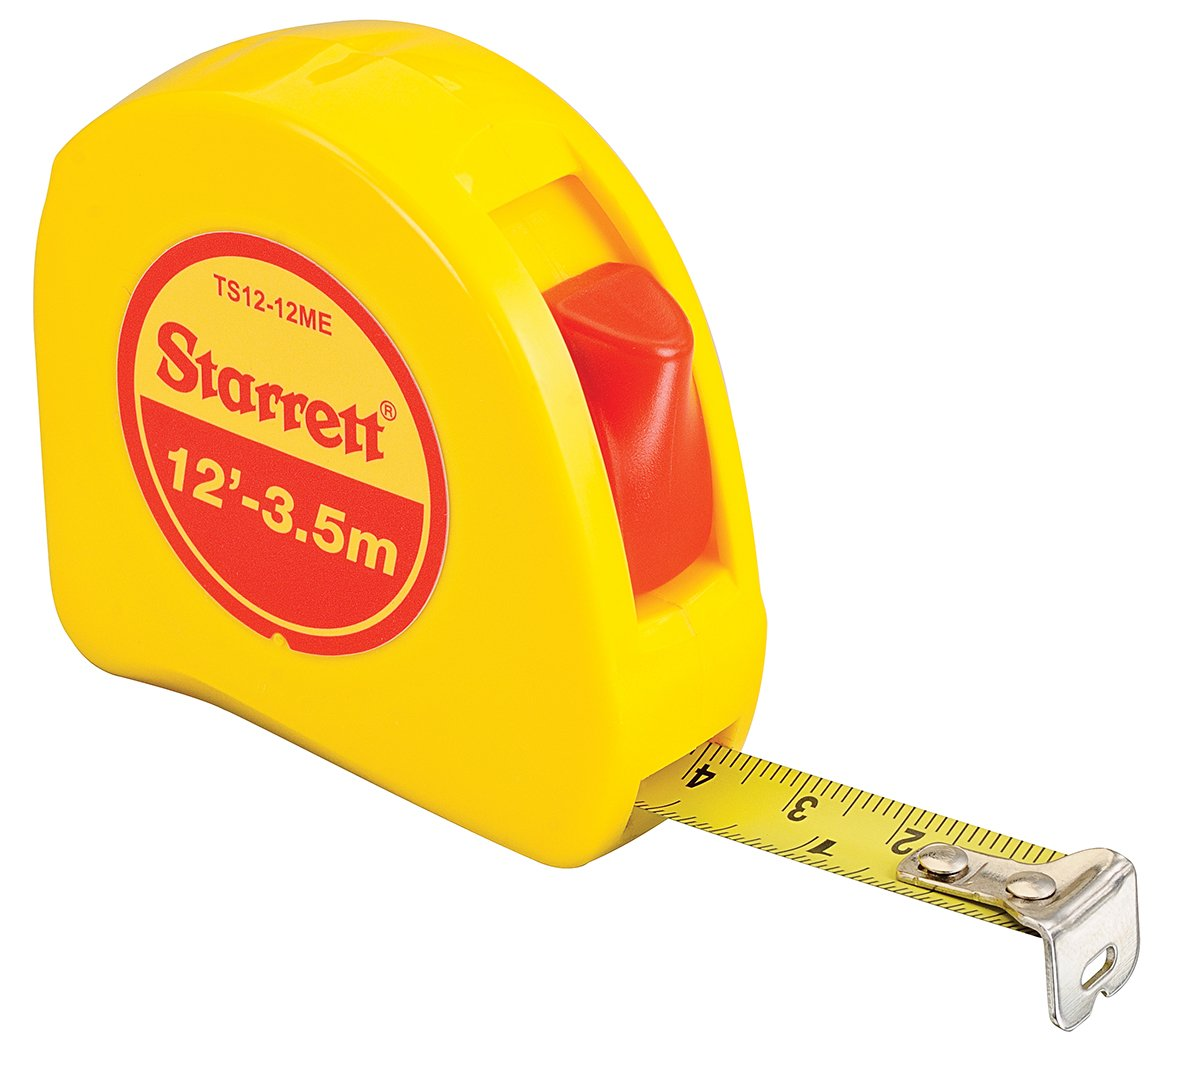 "Starrett KTS12-12ME-N ABS Plastic Case Yellow Measuring Pocket Tape, English/Metric Graduation Style, 12' (3.5m) Length, 0.5"" (12.7mm) Width, 0.0625"" Graduation Interval"